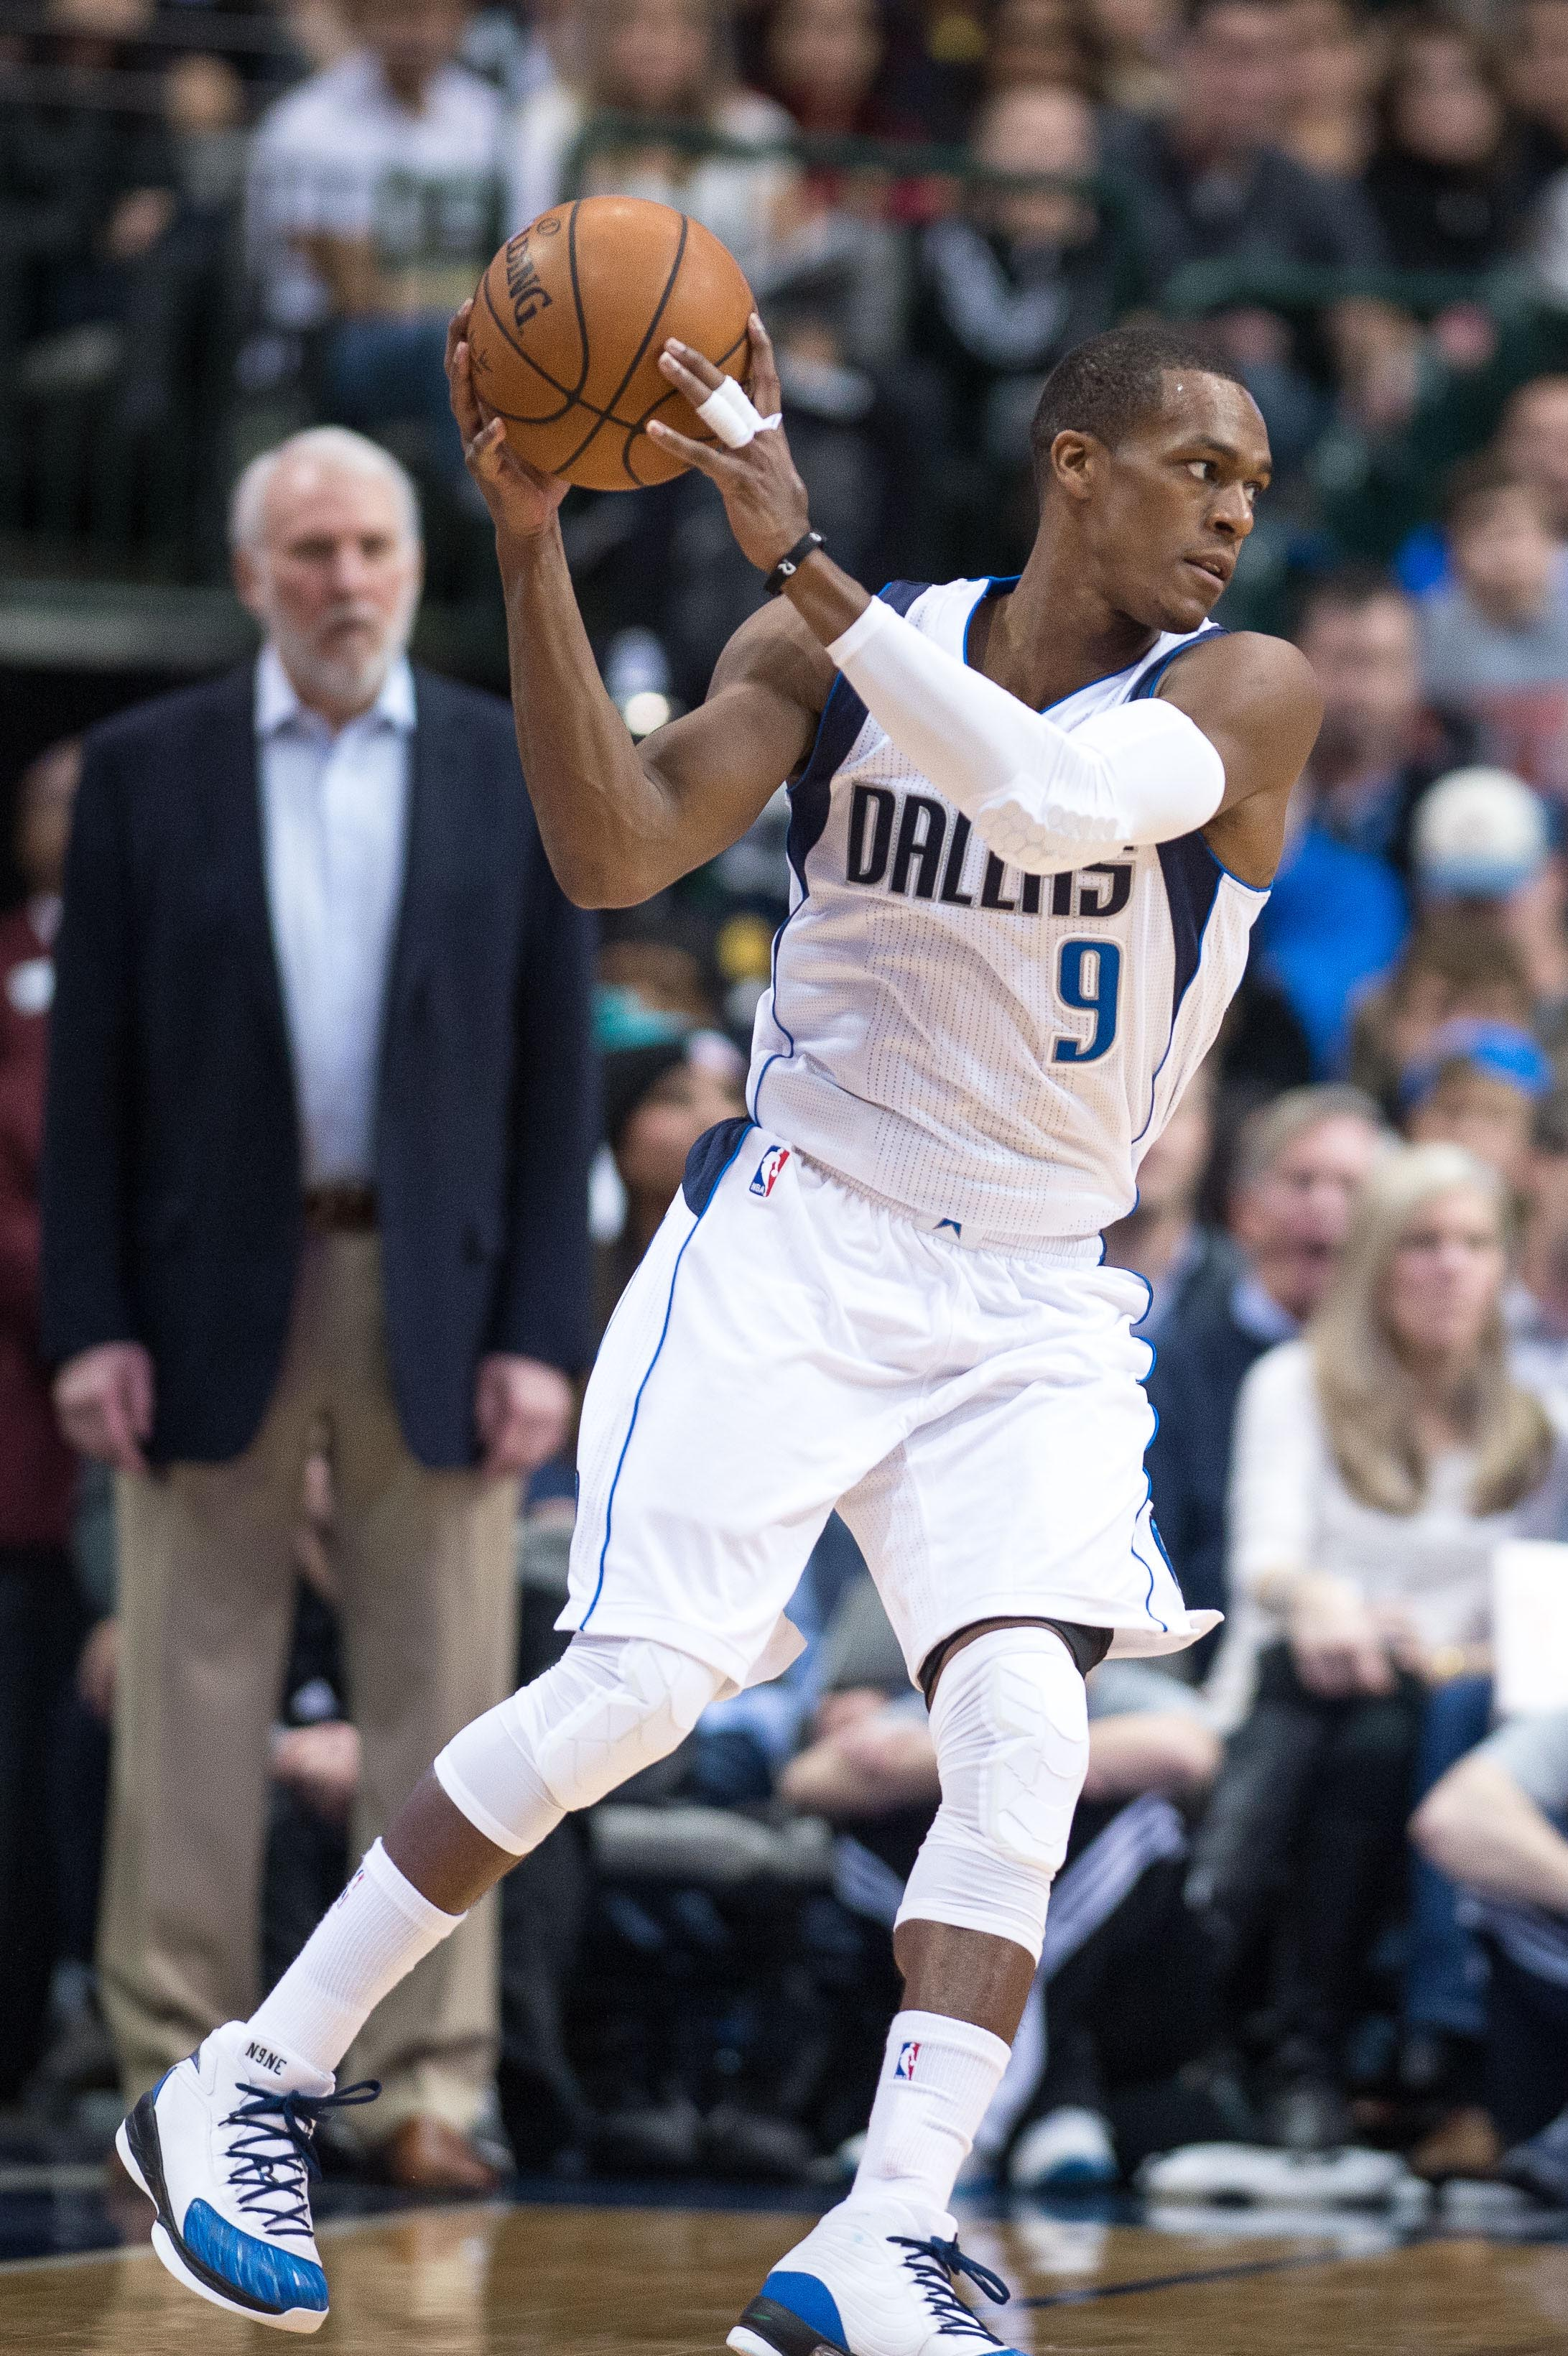 NBA scores 2014: Rajon Rondo provides a glimpse and 3 other things we learned